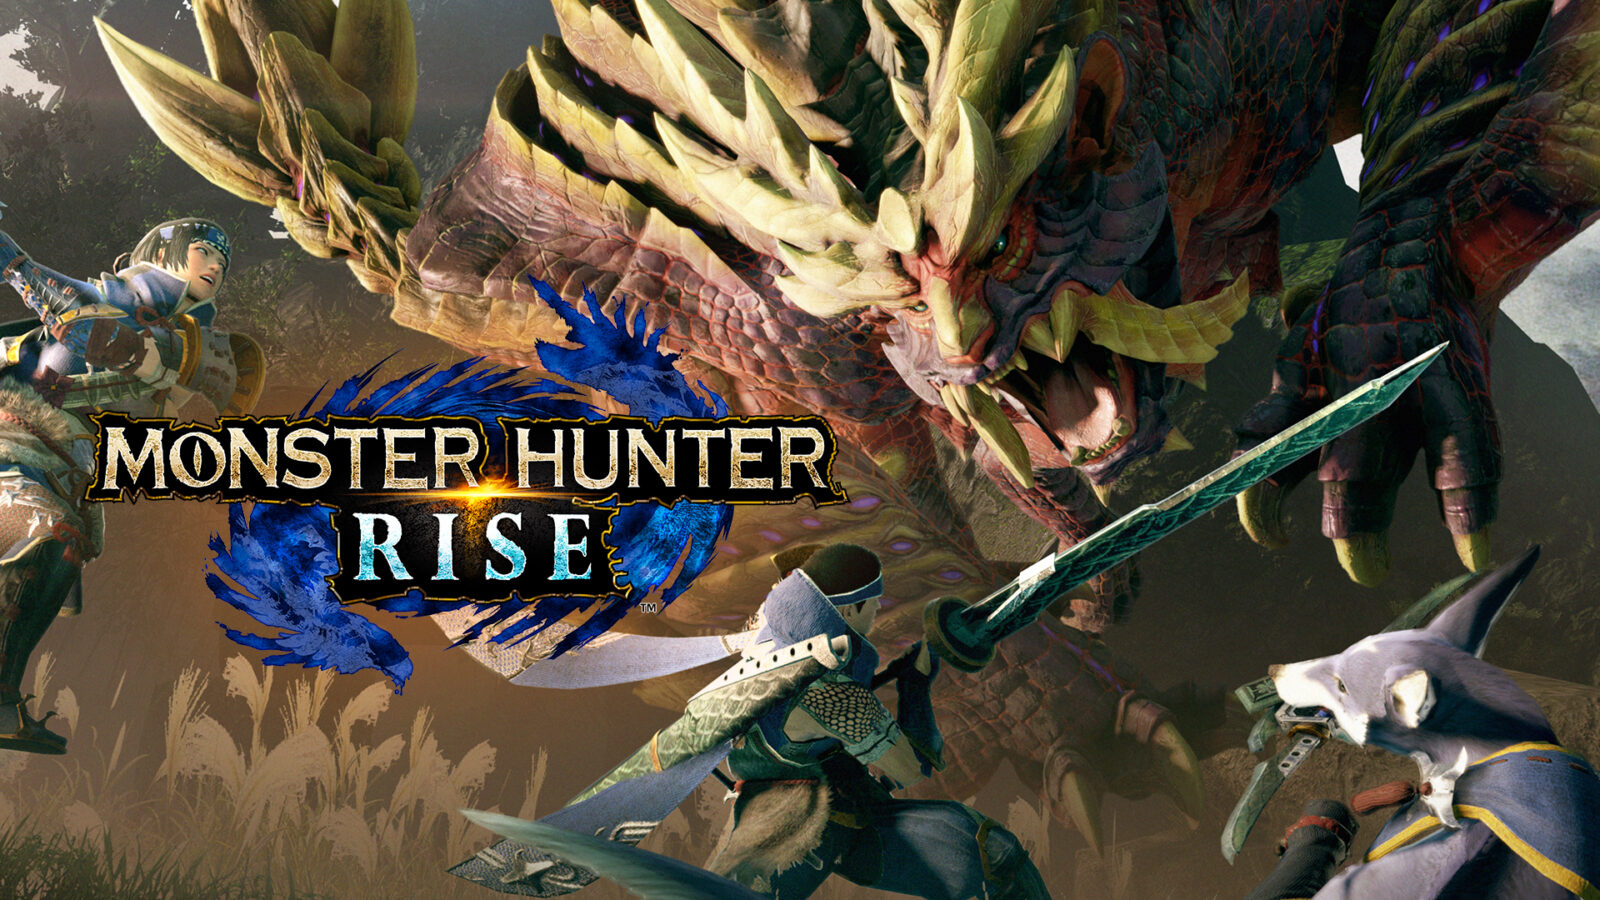 eShop do Nintendo Switch cai com o lançamento da demo de 'Monster Hunter Rise'